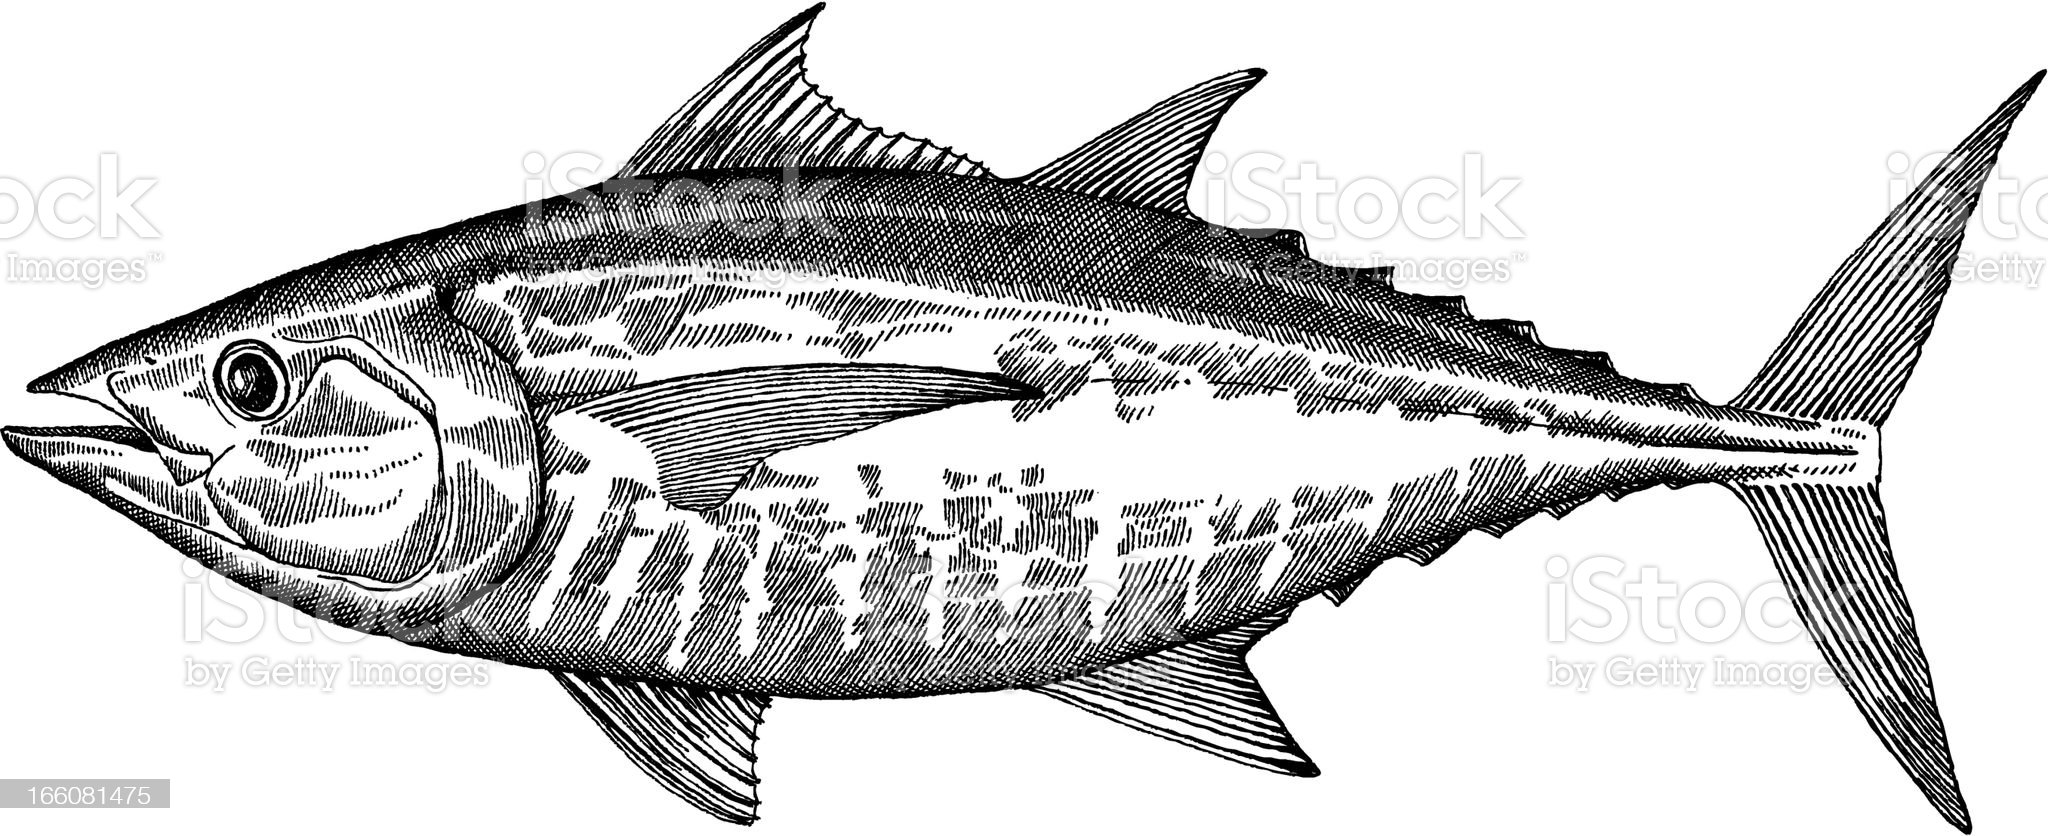 Tuna Fish Drawing royalty-free stock vector art